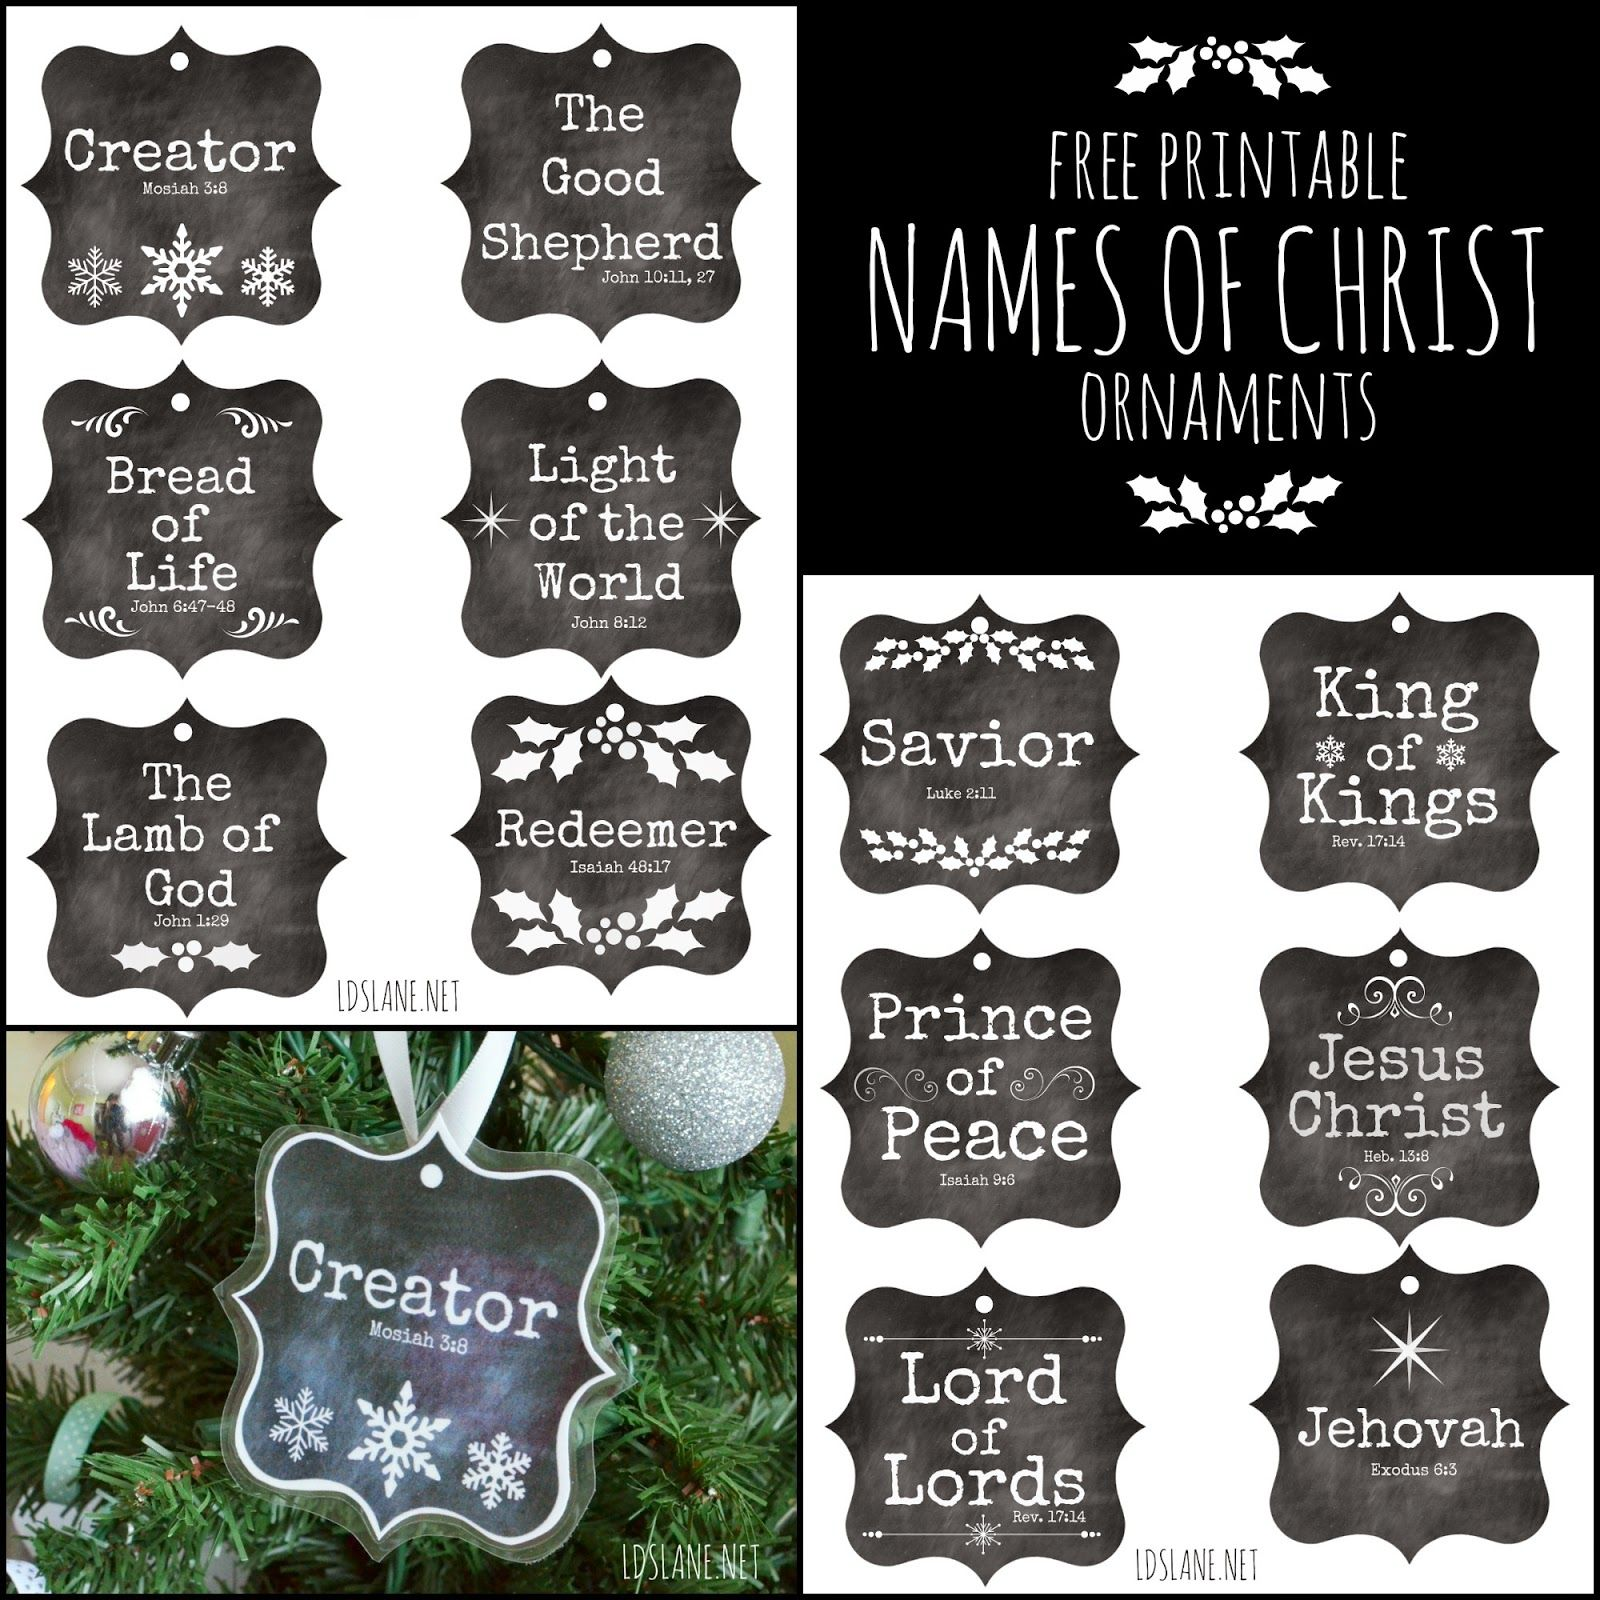 Lds Lane Names Of Christ Free Printable Ornaments Christian Christmas Christmas Christ Lds Christmas